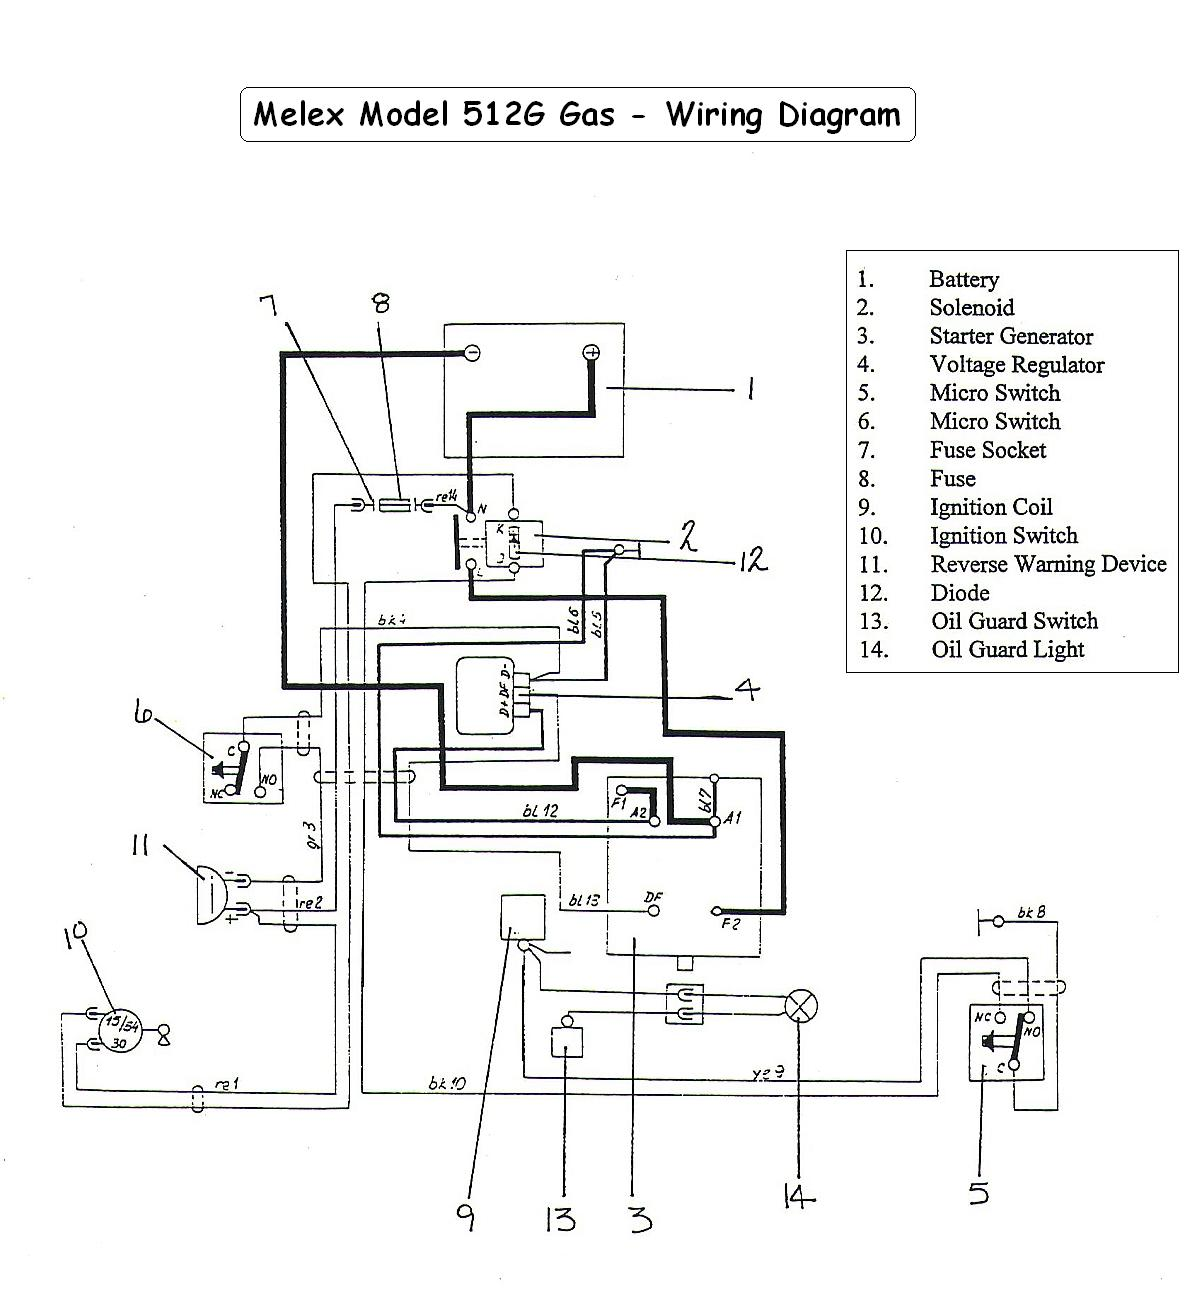 Melex512G_wiring_diagram vintagegolfcartparts com melex golf cart wiring diagram at virtualis.co